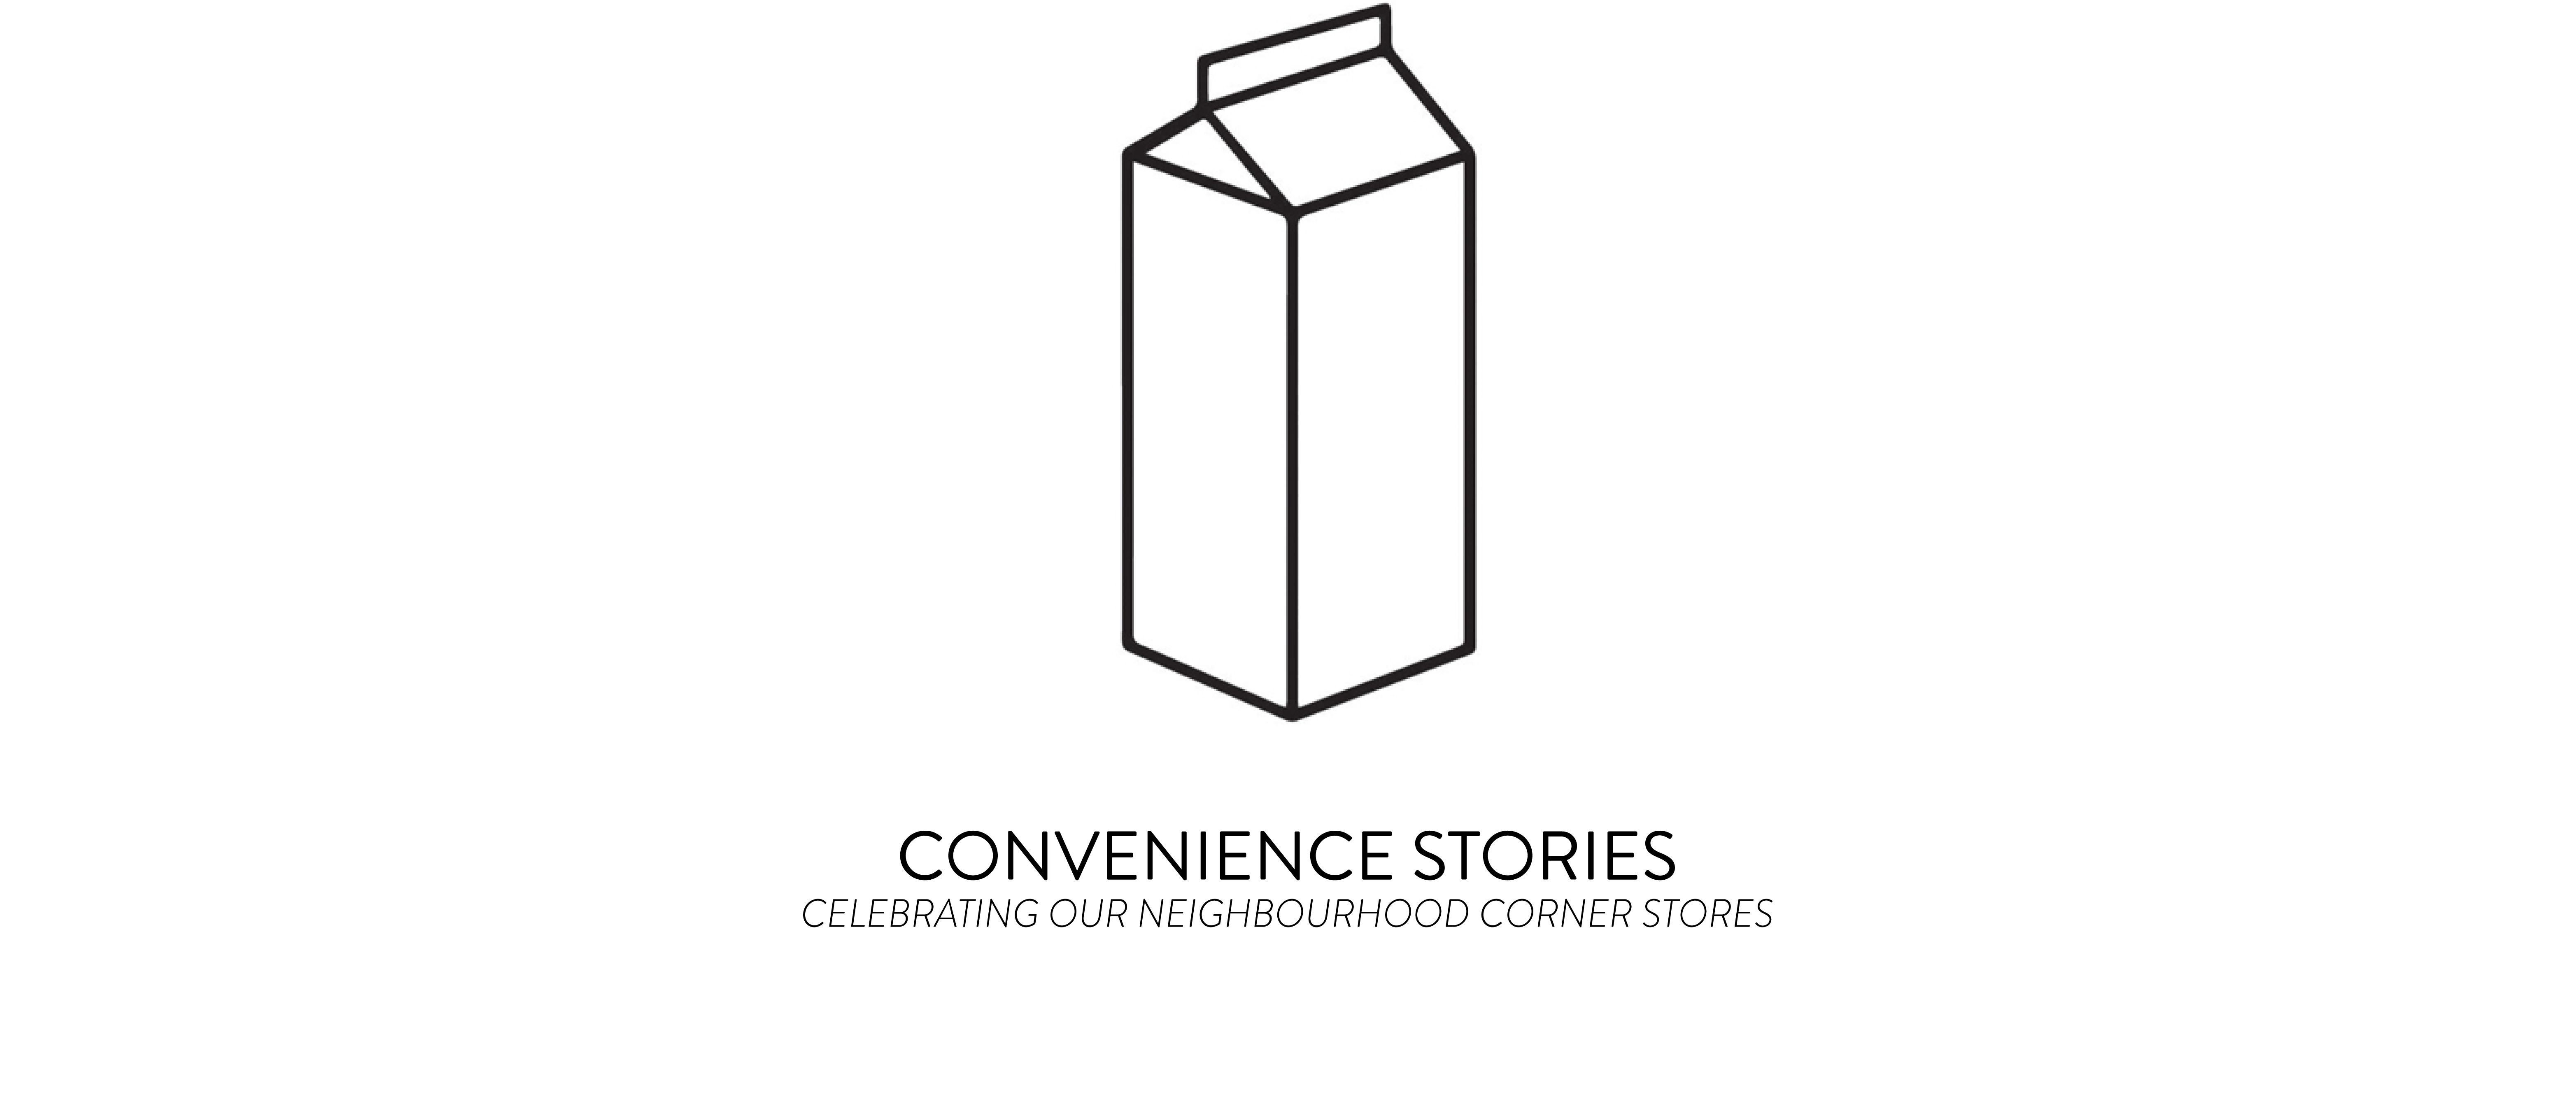 convenience stories - ontario convenience stores association